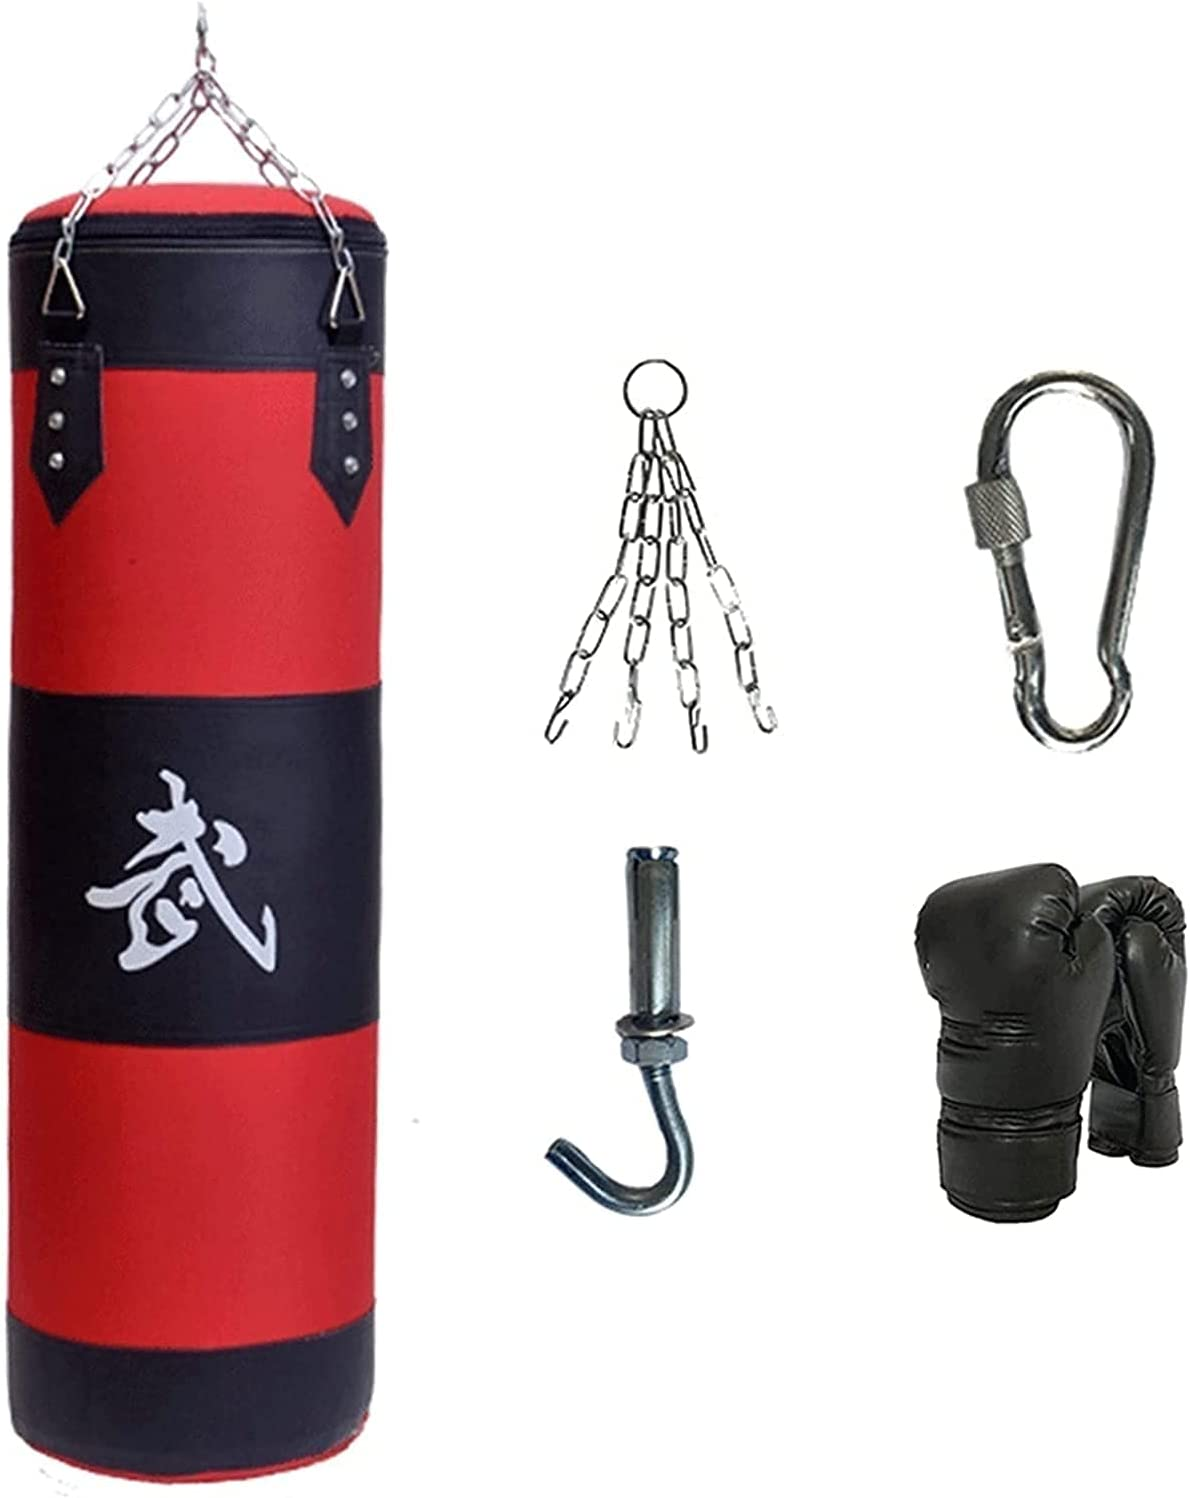 Haieshop Punching Bag for Adults Boxing PU Thickened Super sale period limited San Diego Mall Leather